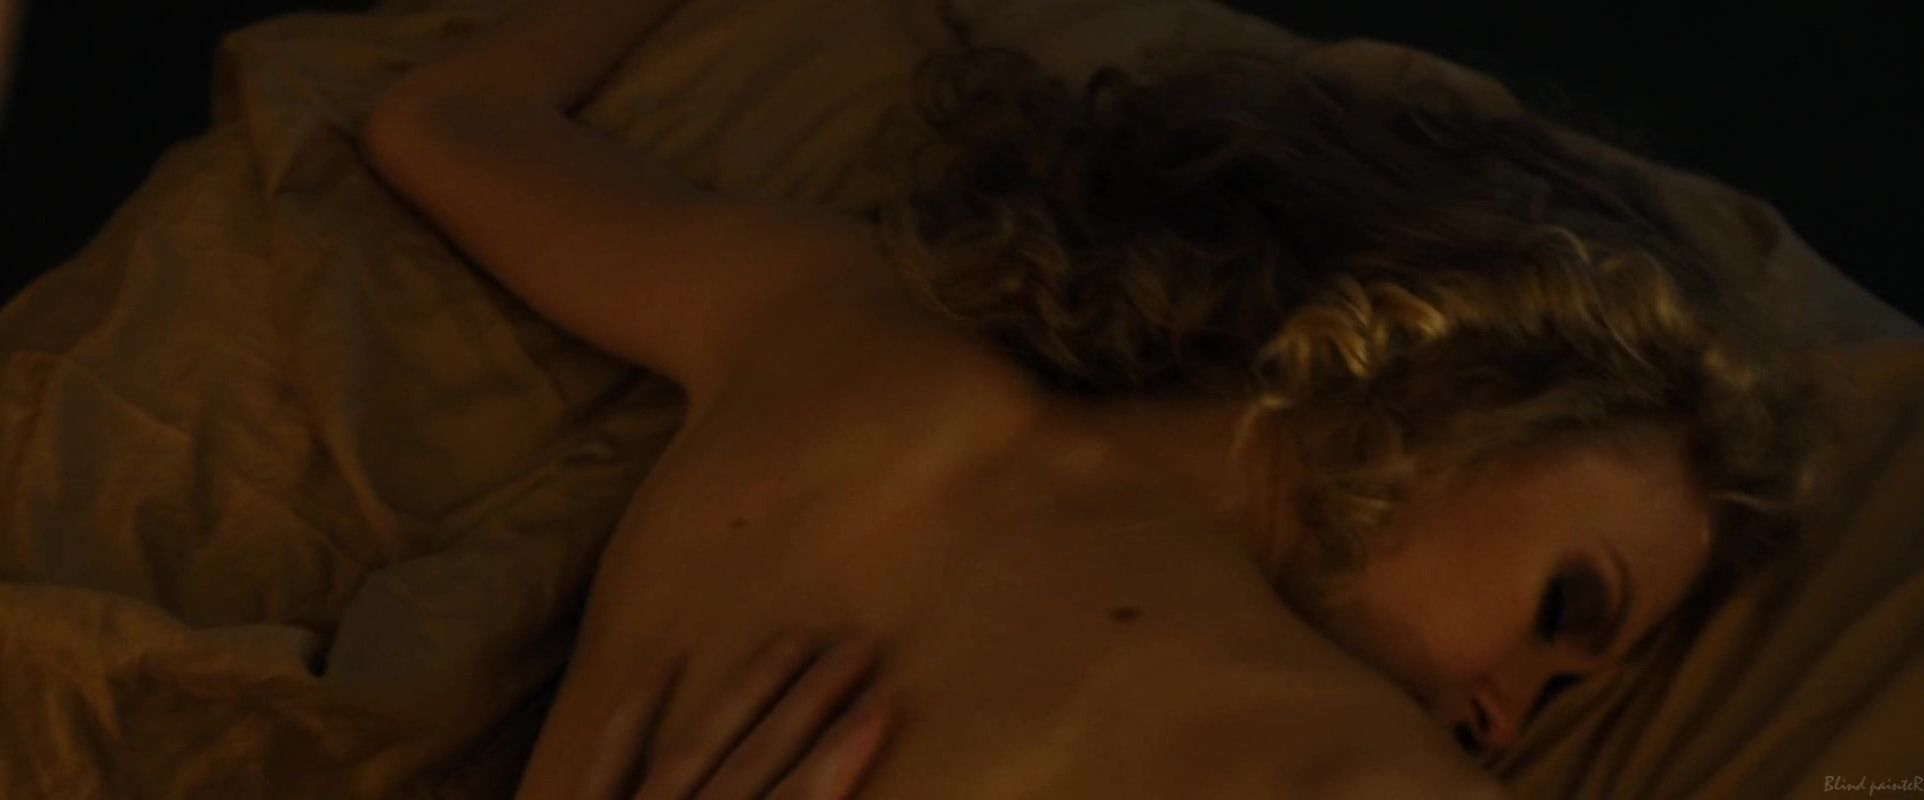 Penelope Mitchell, Jessica Pike nude - Zipper (2015) Video ...